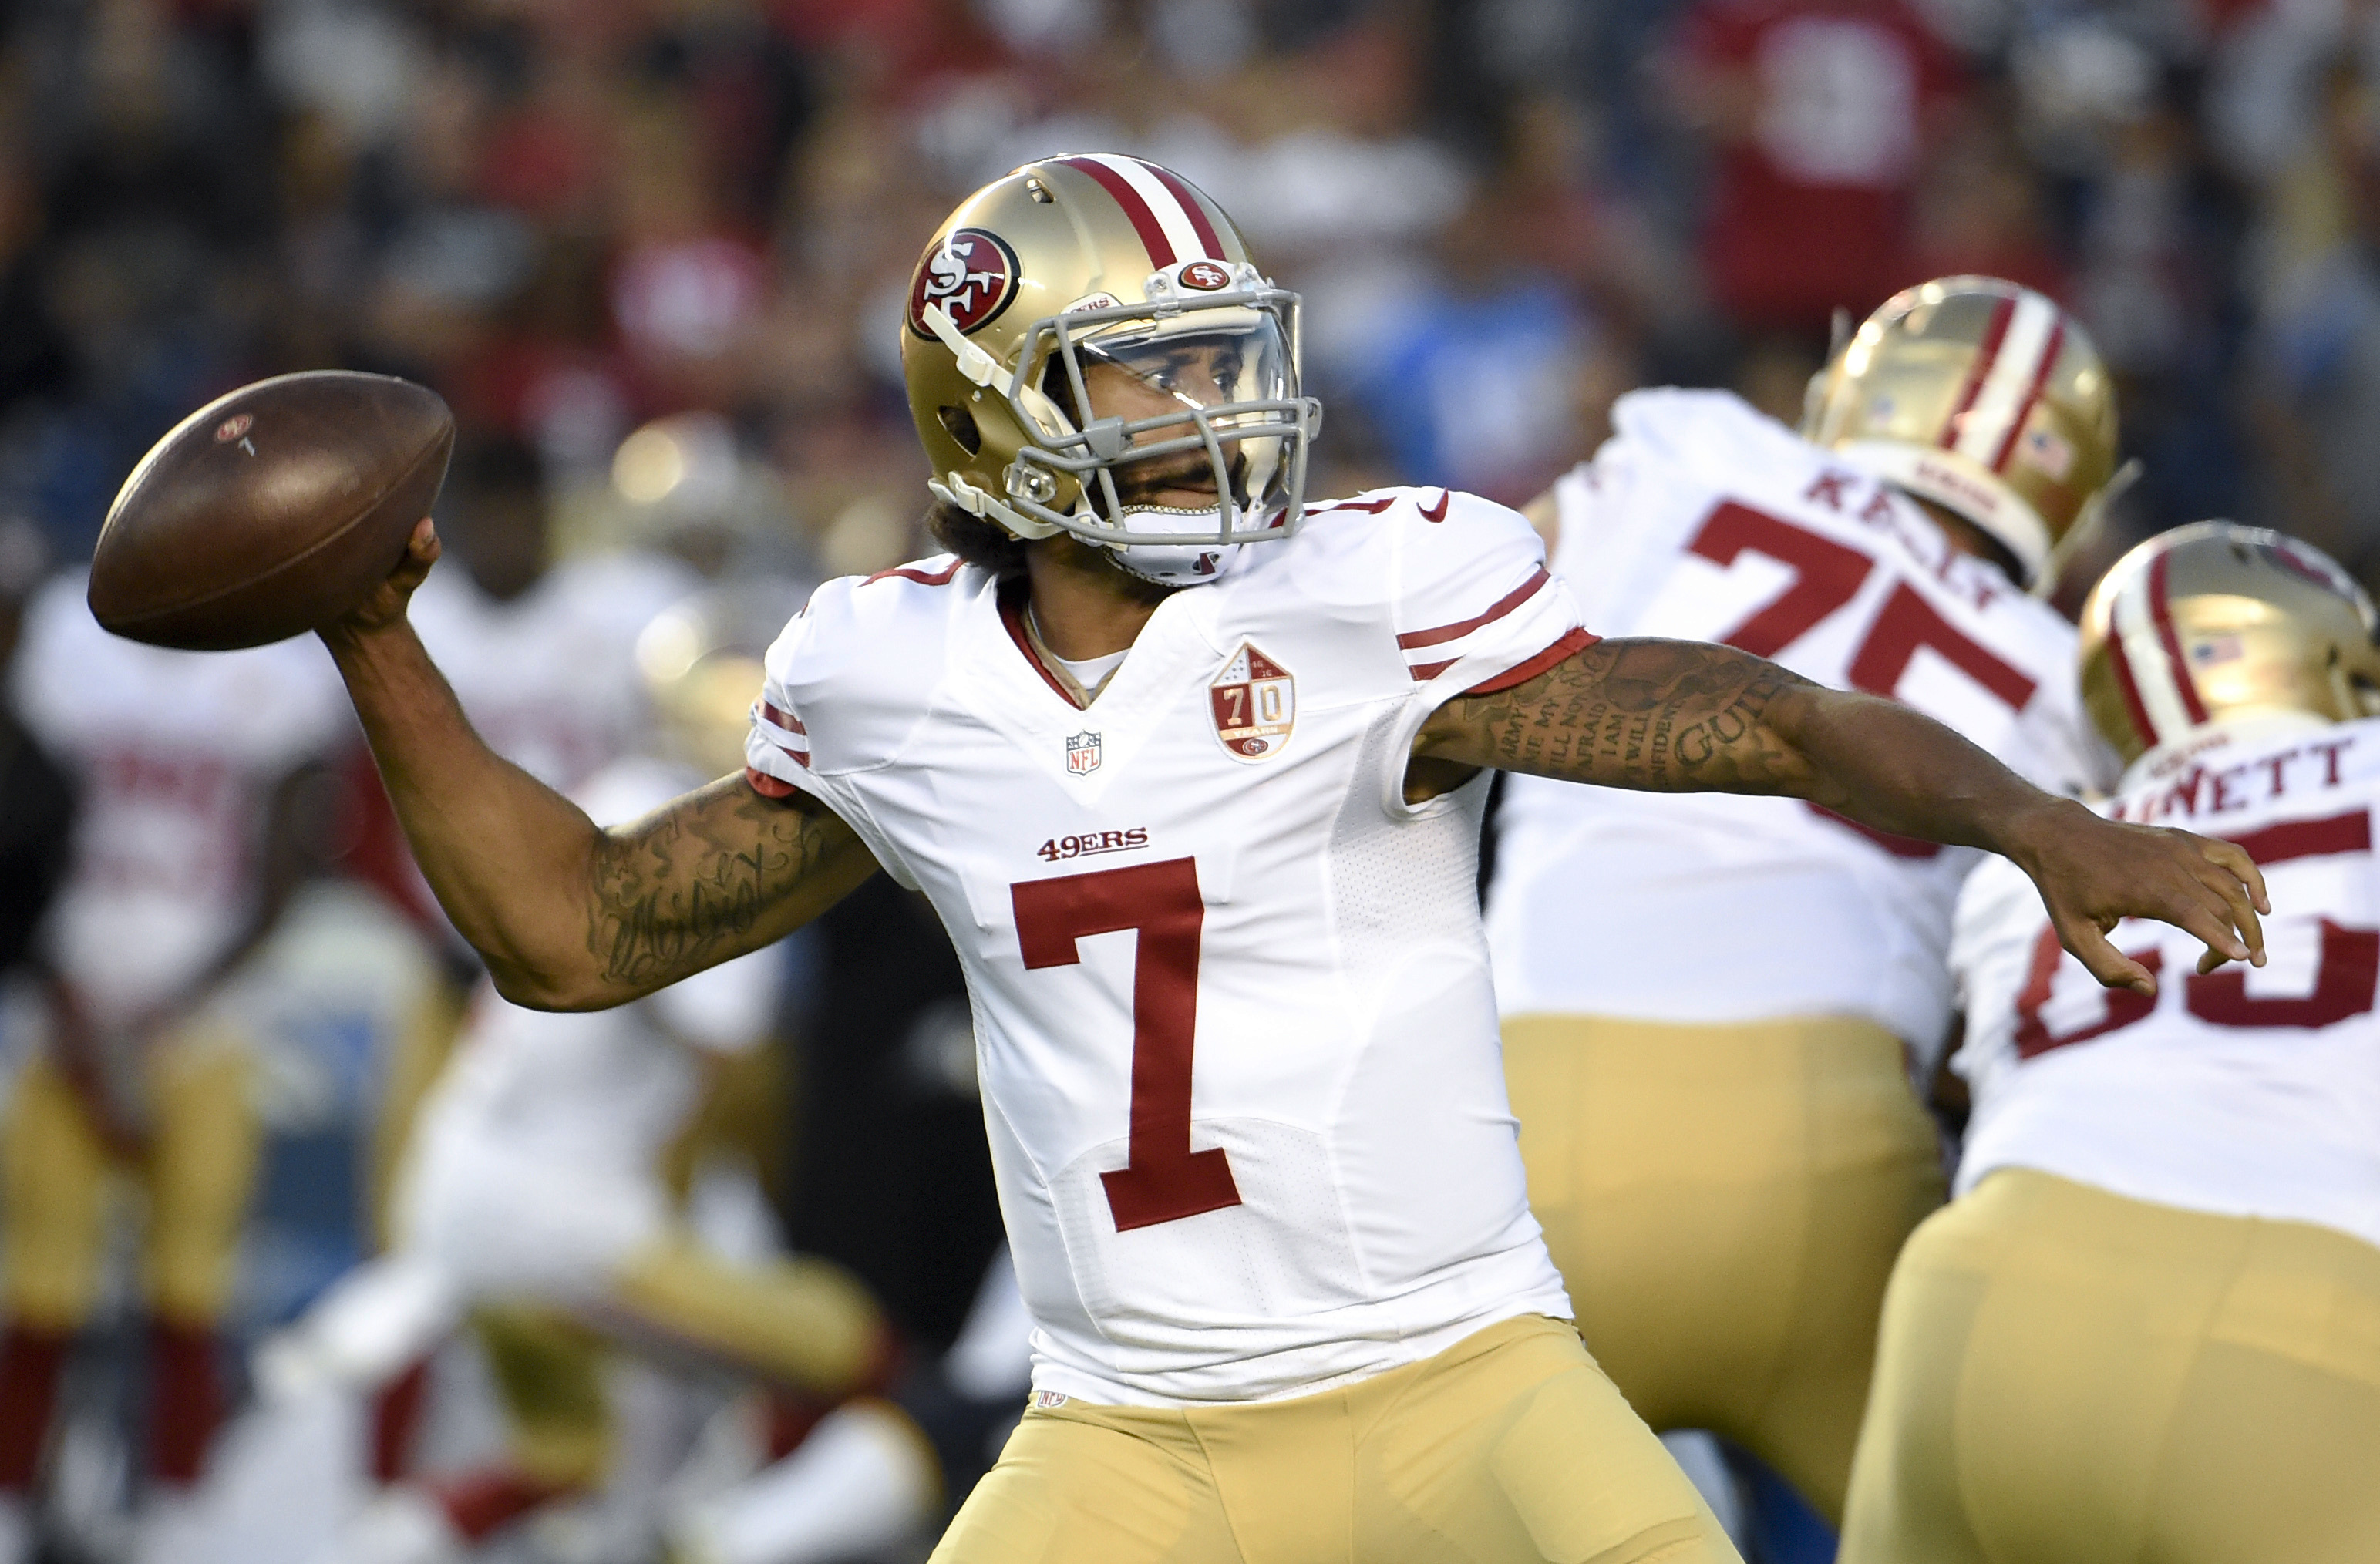 San Francisco 49ers quarterback Colin Kaepernick passes against the San Diego Chargers during the first half of an NFL preseason football game, Thursday, Sept. 1, 2016, in San Diego. (AP Photo/Denis Poroy)